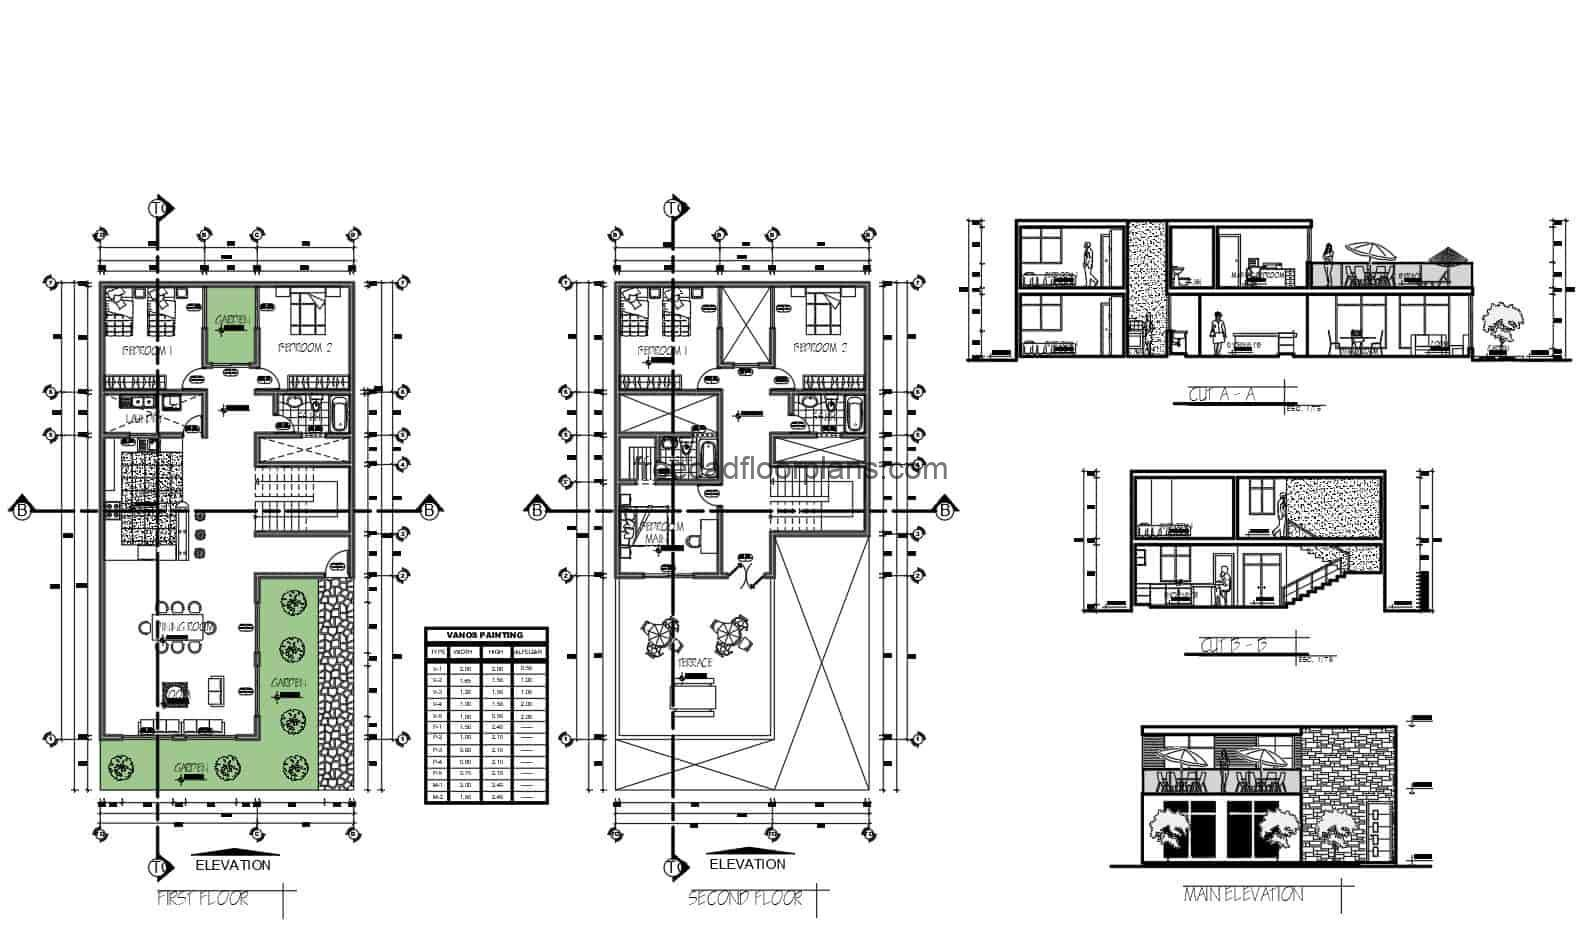 Architectural and dimensioned DWG plans of a two level rectangular residence with five bedrooms in total, two bedrooms on the first level and three bedrooms on the second level with a large front terrace. three bathrooms in total and laundry area on the first level. 2D plans in DWG format for free download.